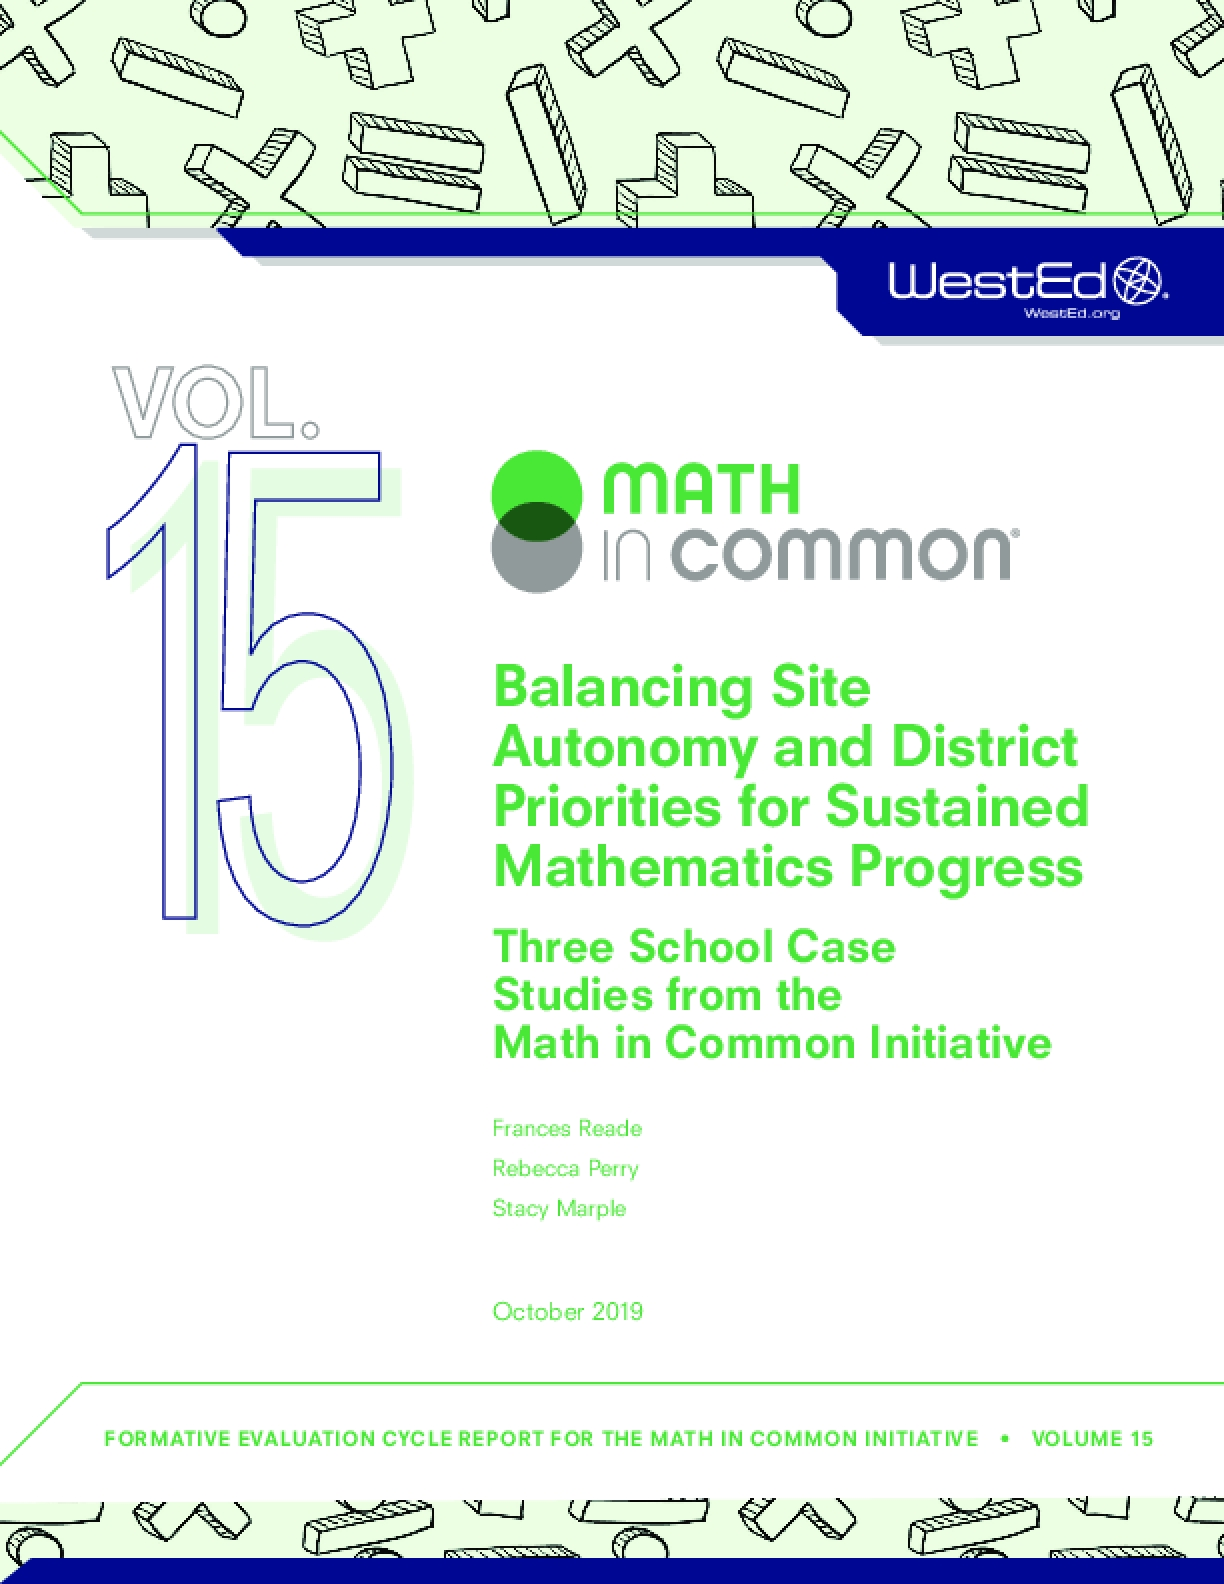 Balancing Site Autonomy and District Priorities for Sustained Mathematics Progress: Three School Case Studies from the Math in Common Initiative